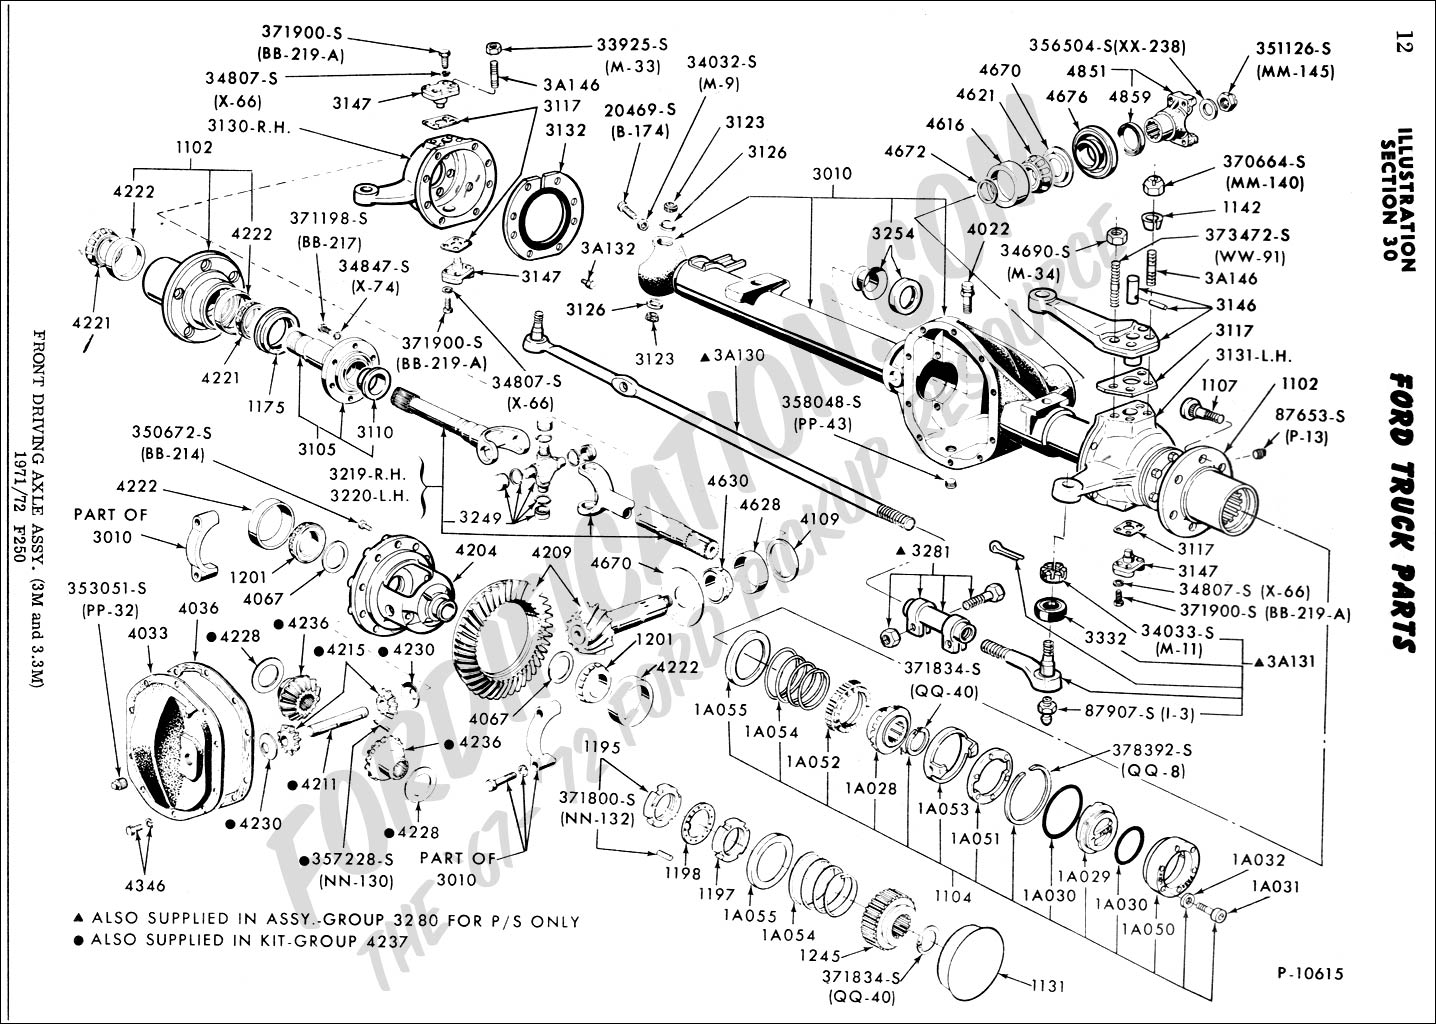 Assembly Drawing Front Driving Axle Assembly